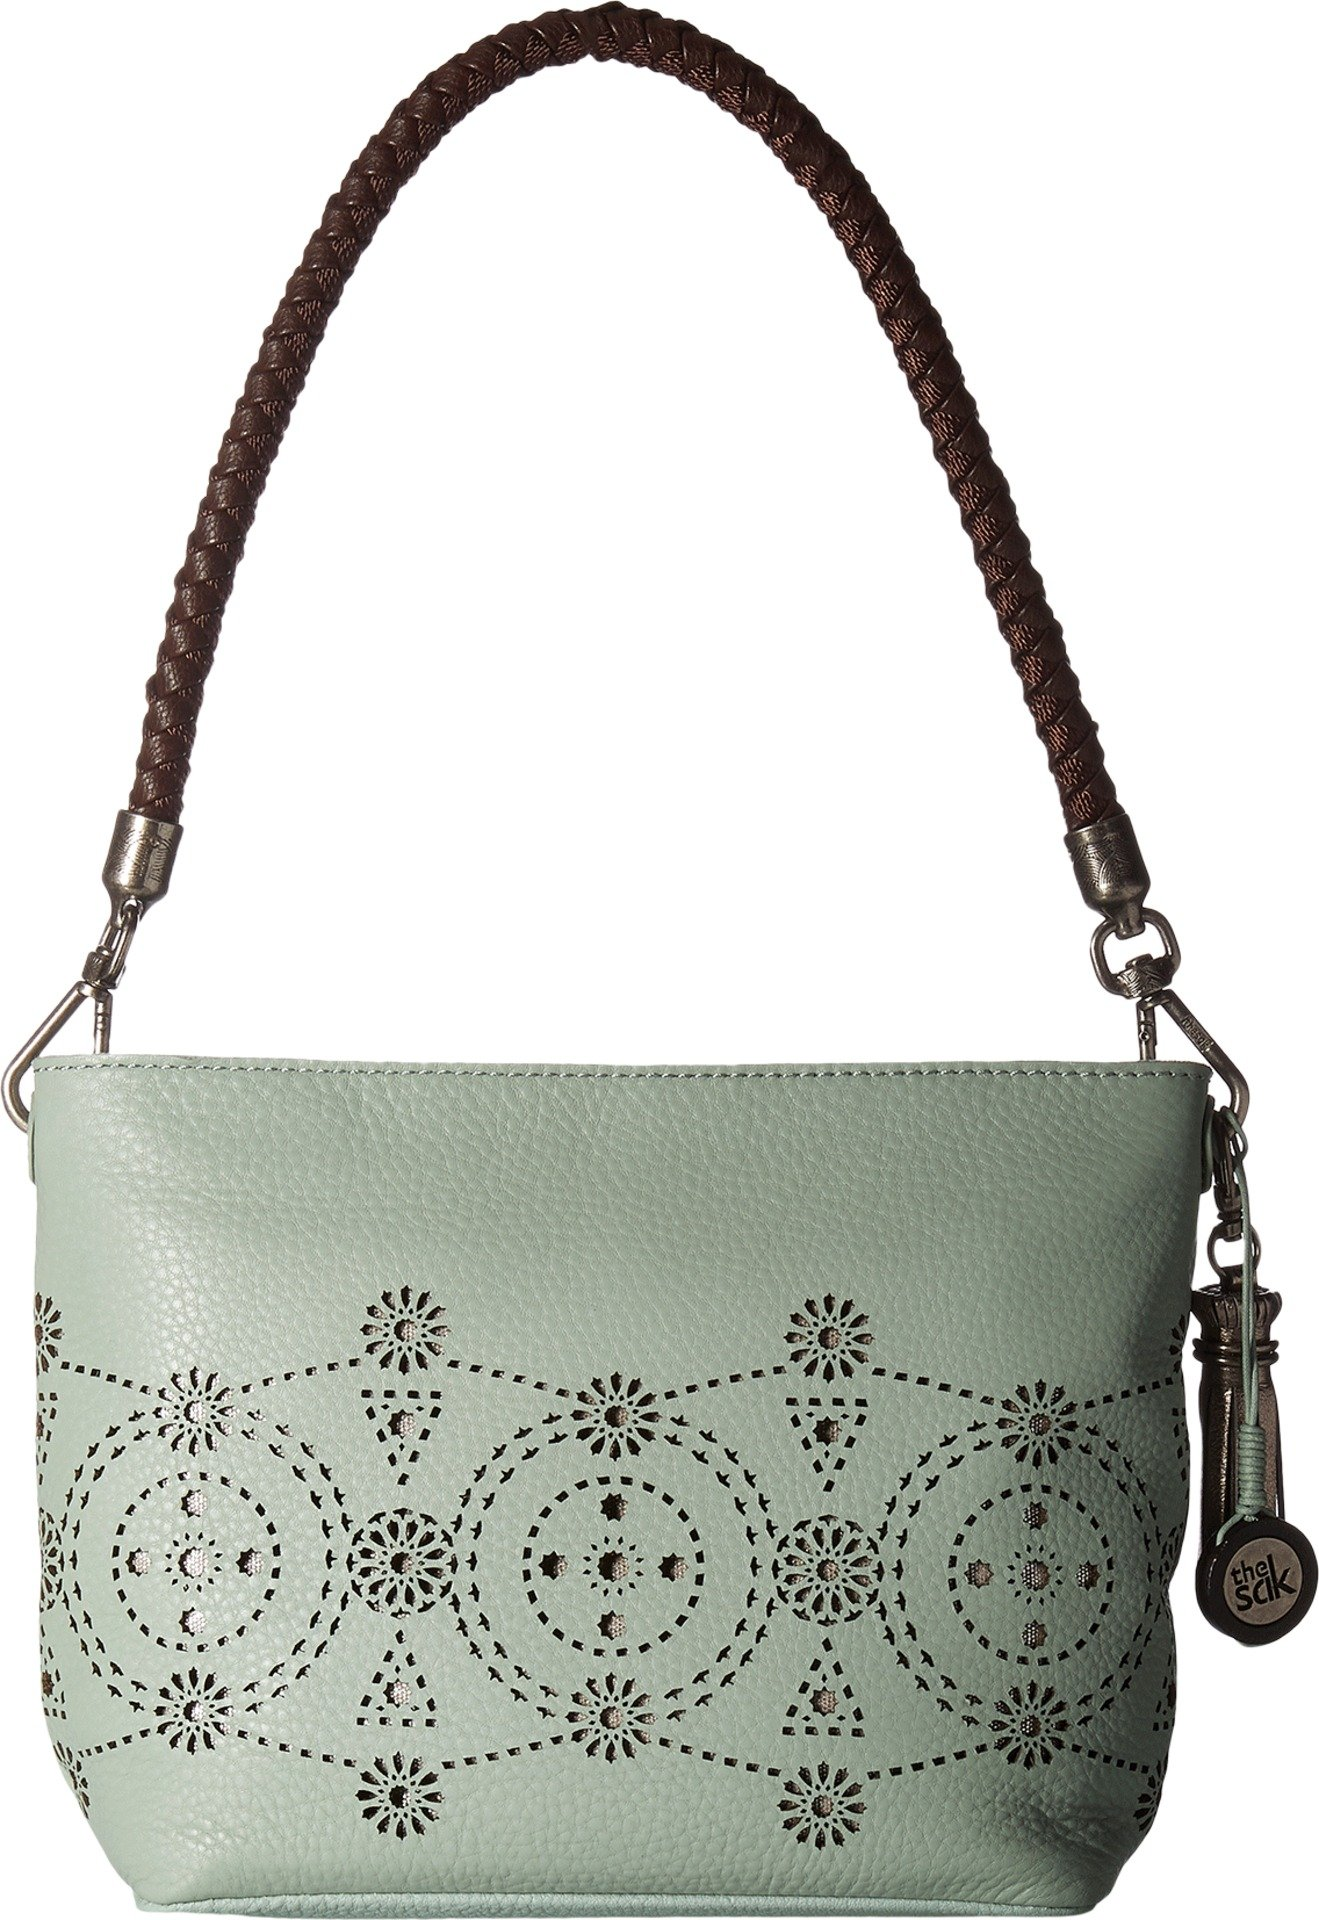 The Sak Women's Indio Leather Demi Mint Morrocan Perf Handbag